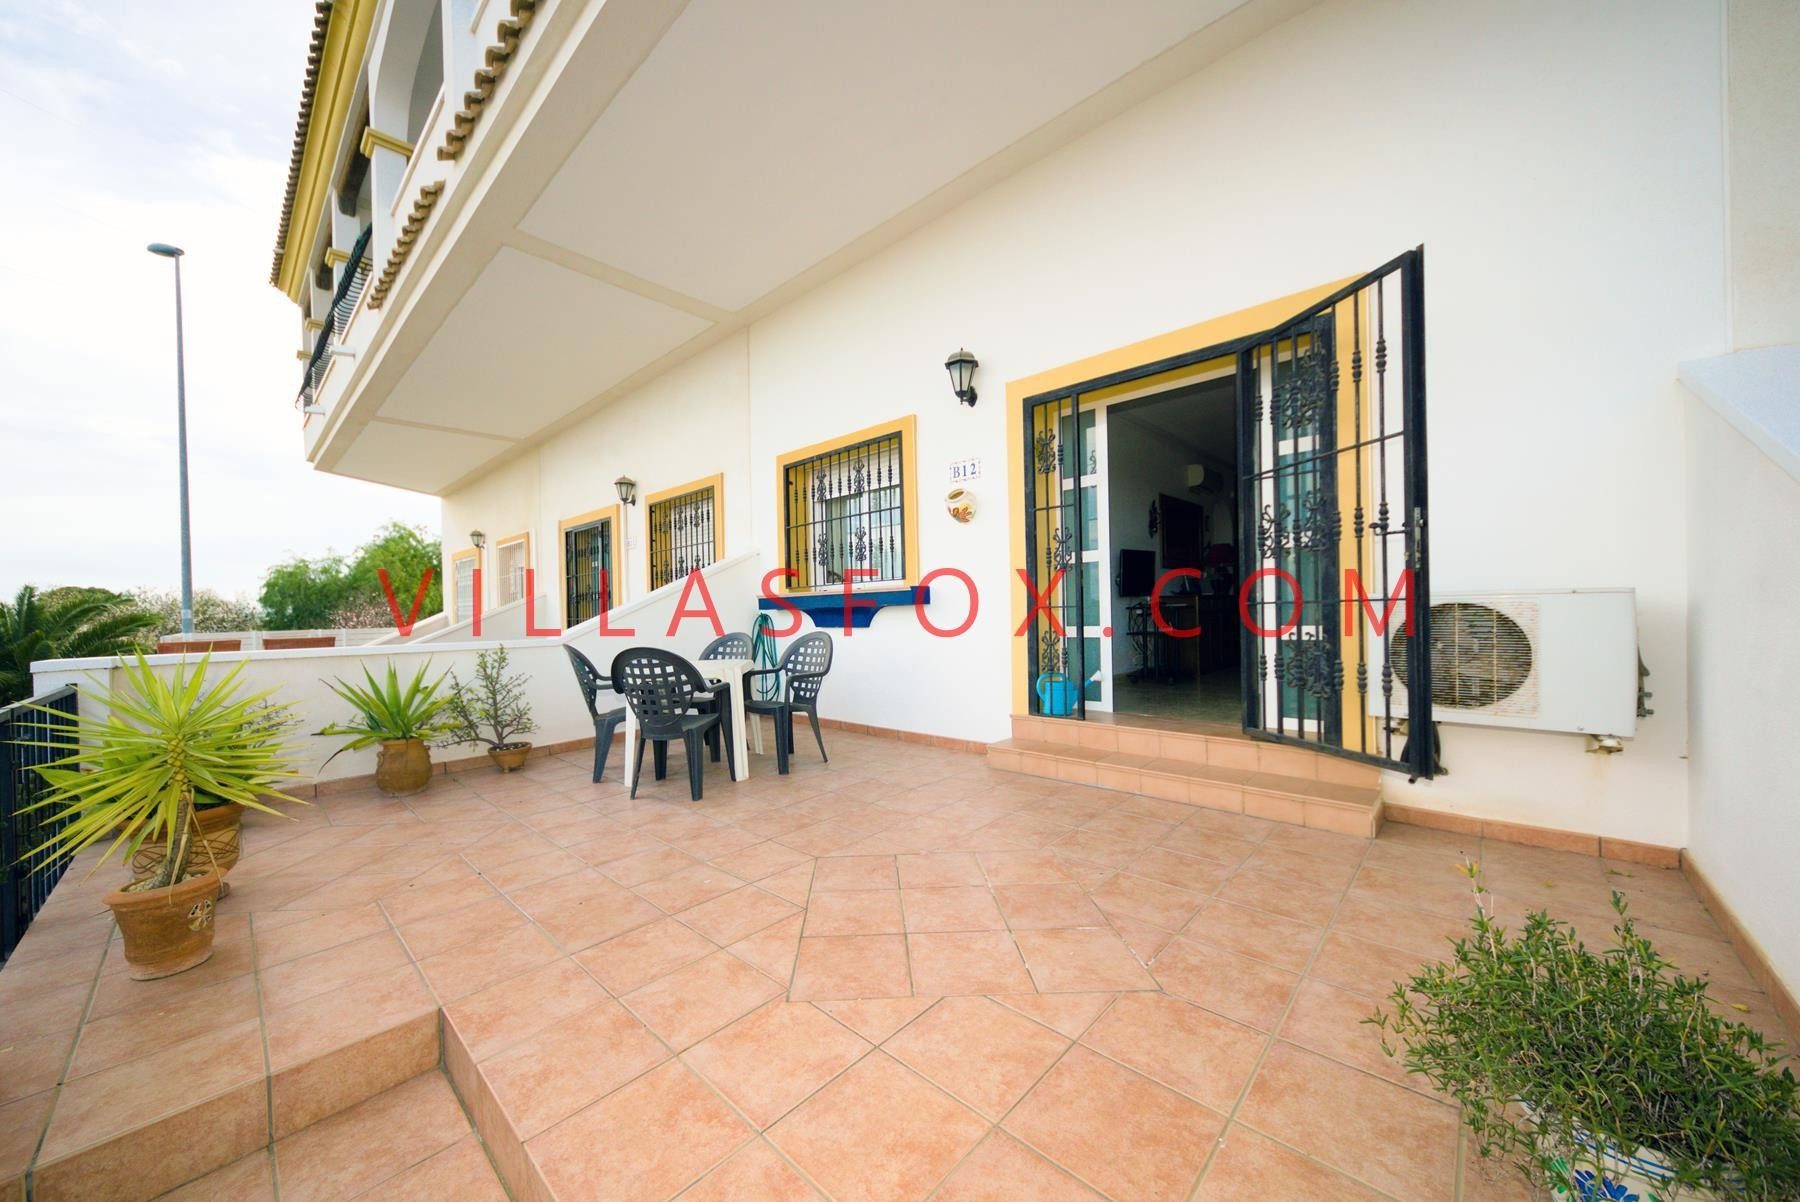 2-bedroom large ground-floor apartment with garden, Costa Paraíso II, San Miguel de Salinas